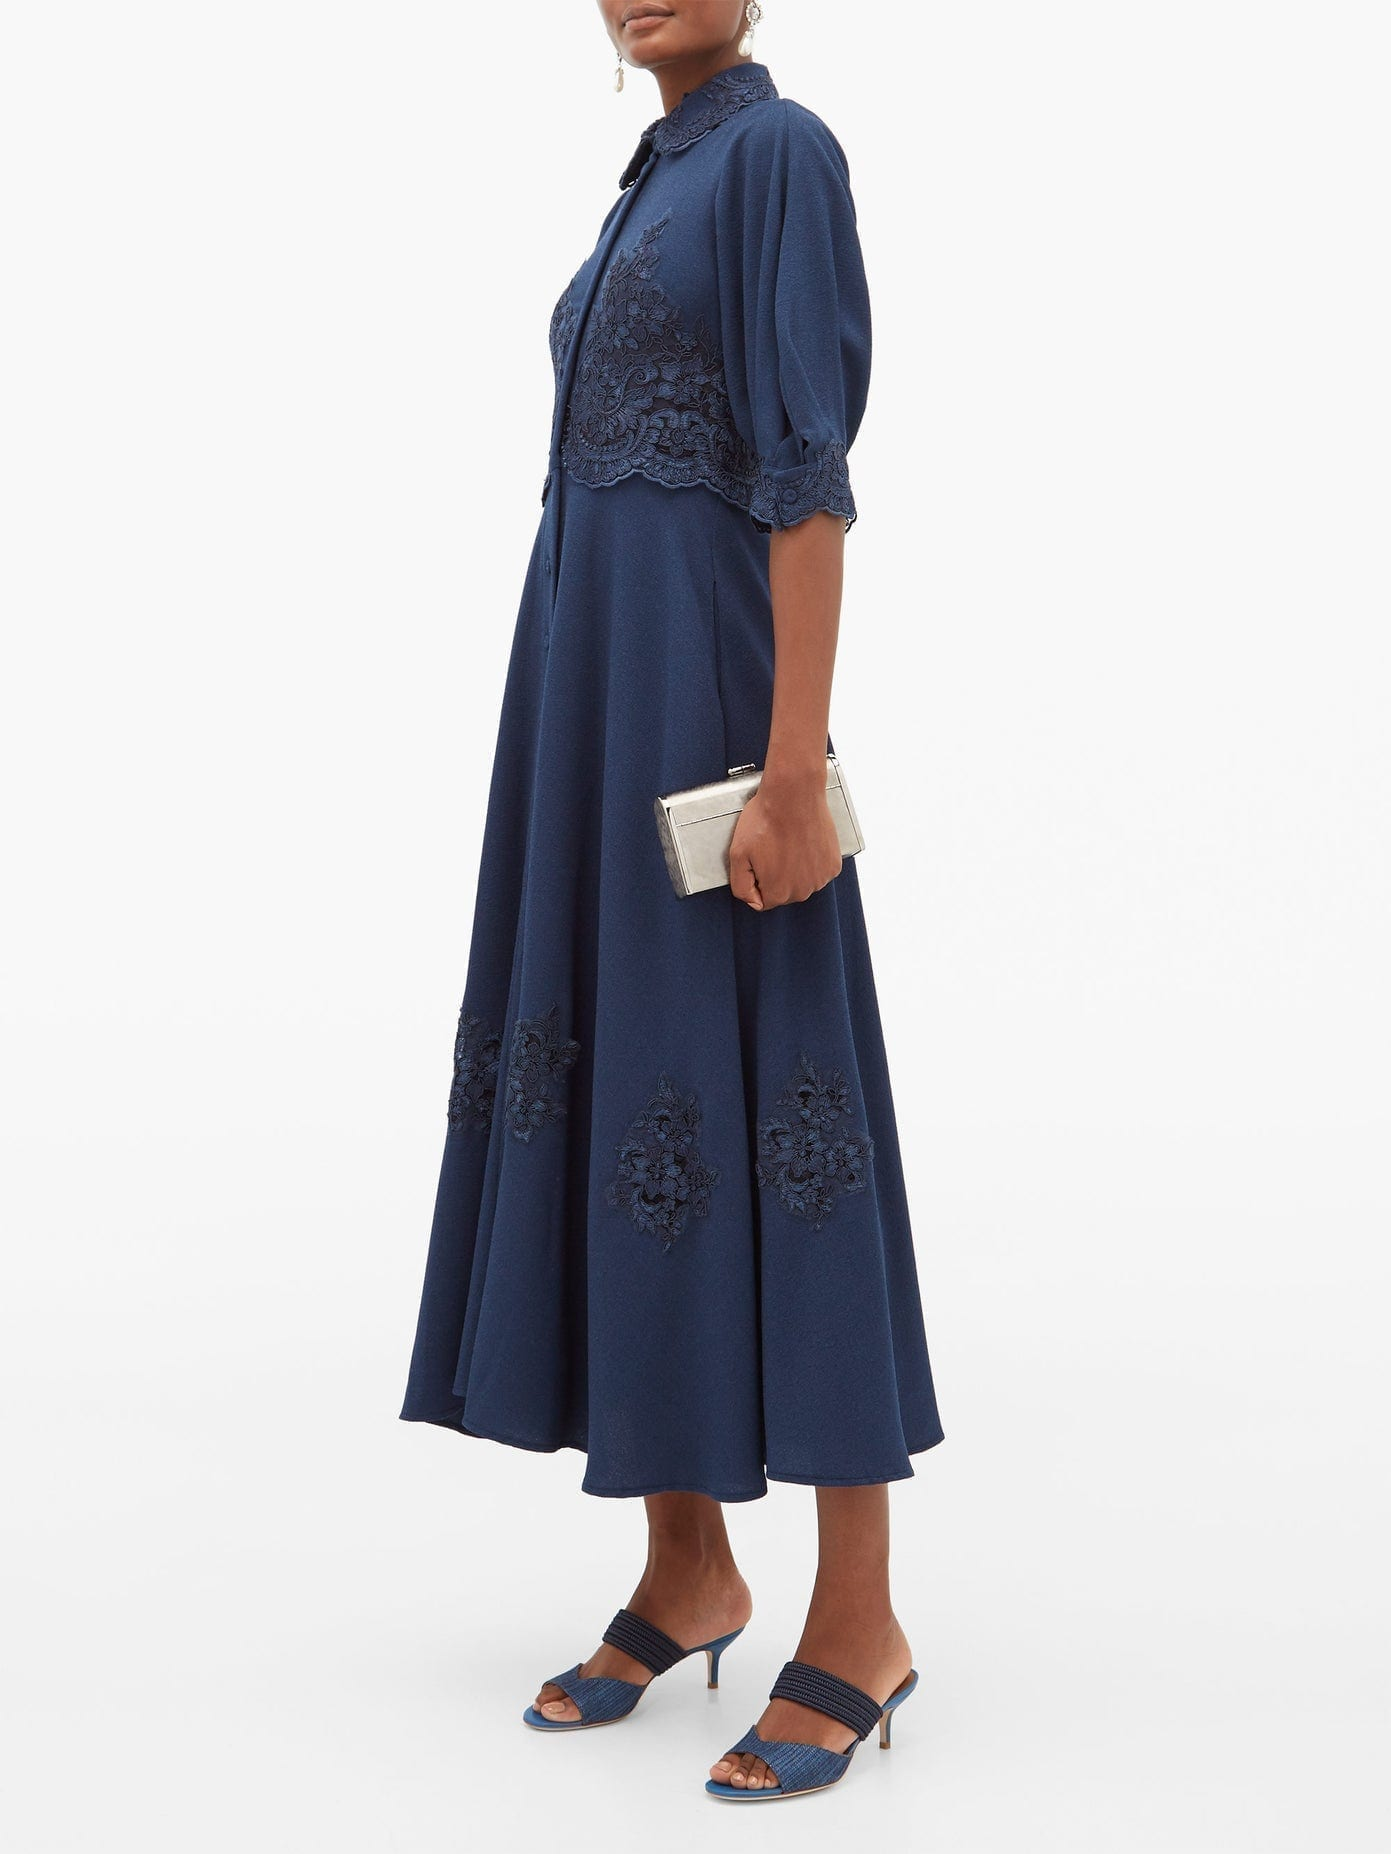 LUISA BECCARIA Chantilly Lace-trim Cady Dress